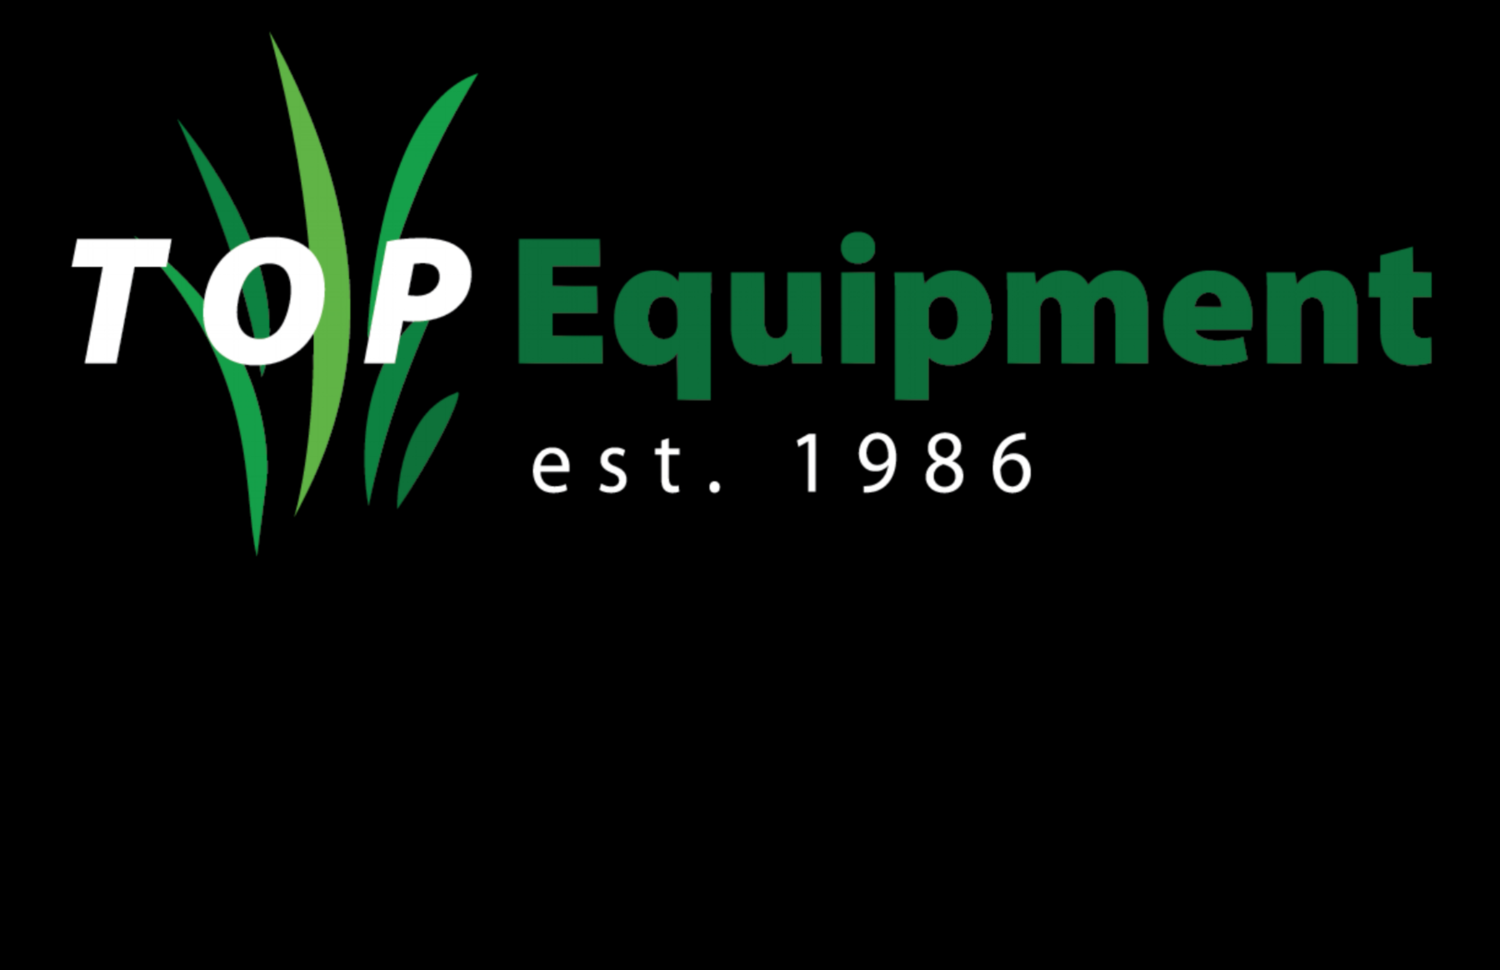 TOP Equipment